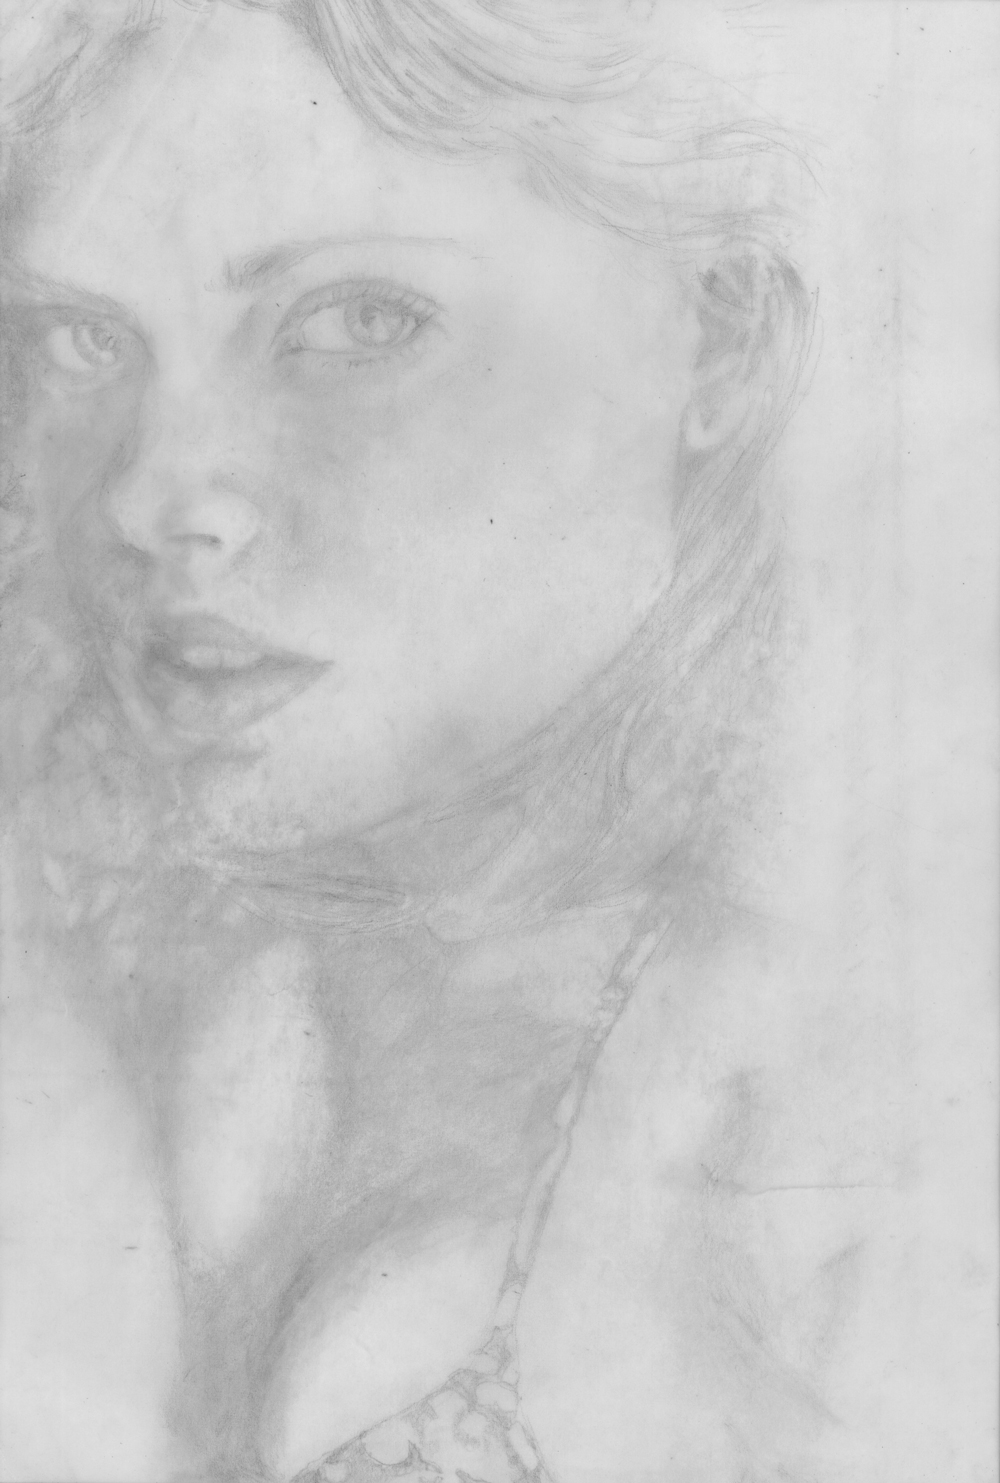 Photo Realism Drawing 6